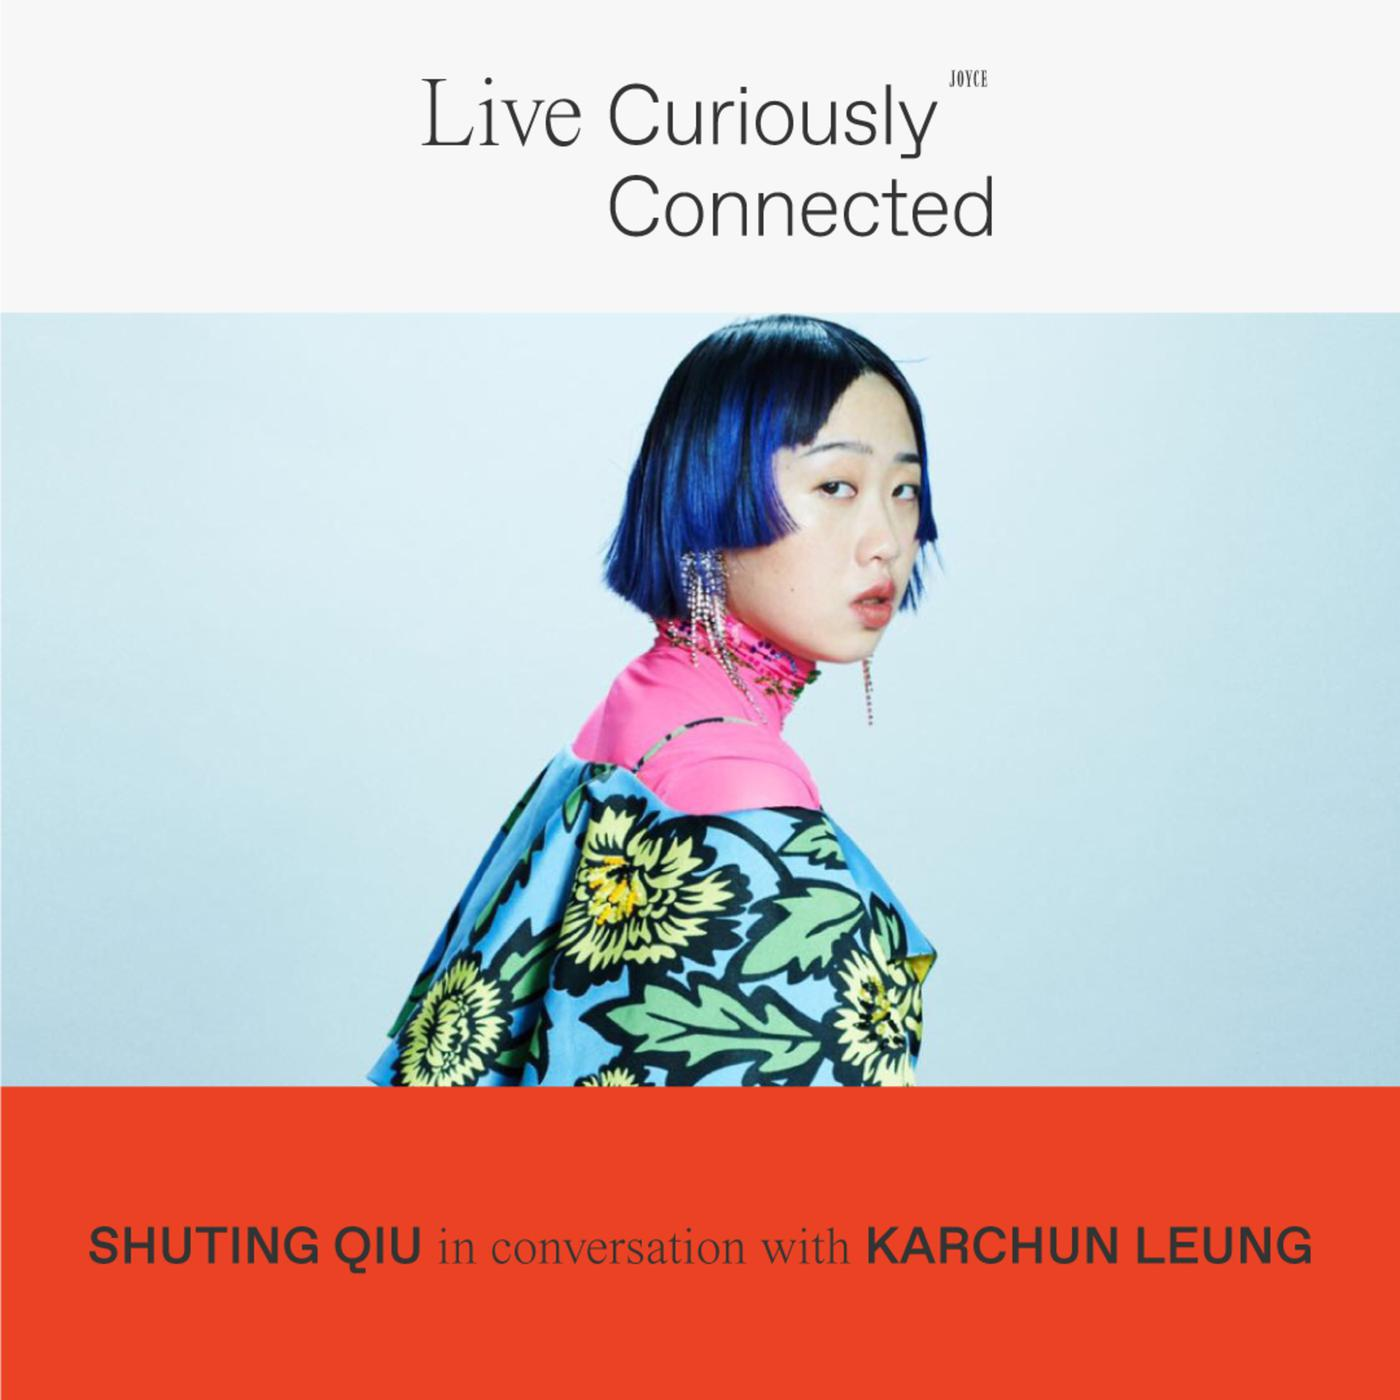 Live Connected Shuting Qiu 裘淑婷 In Conversation With Karchun Leung 梁家俊 Chi Listen Notes